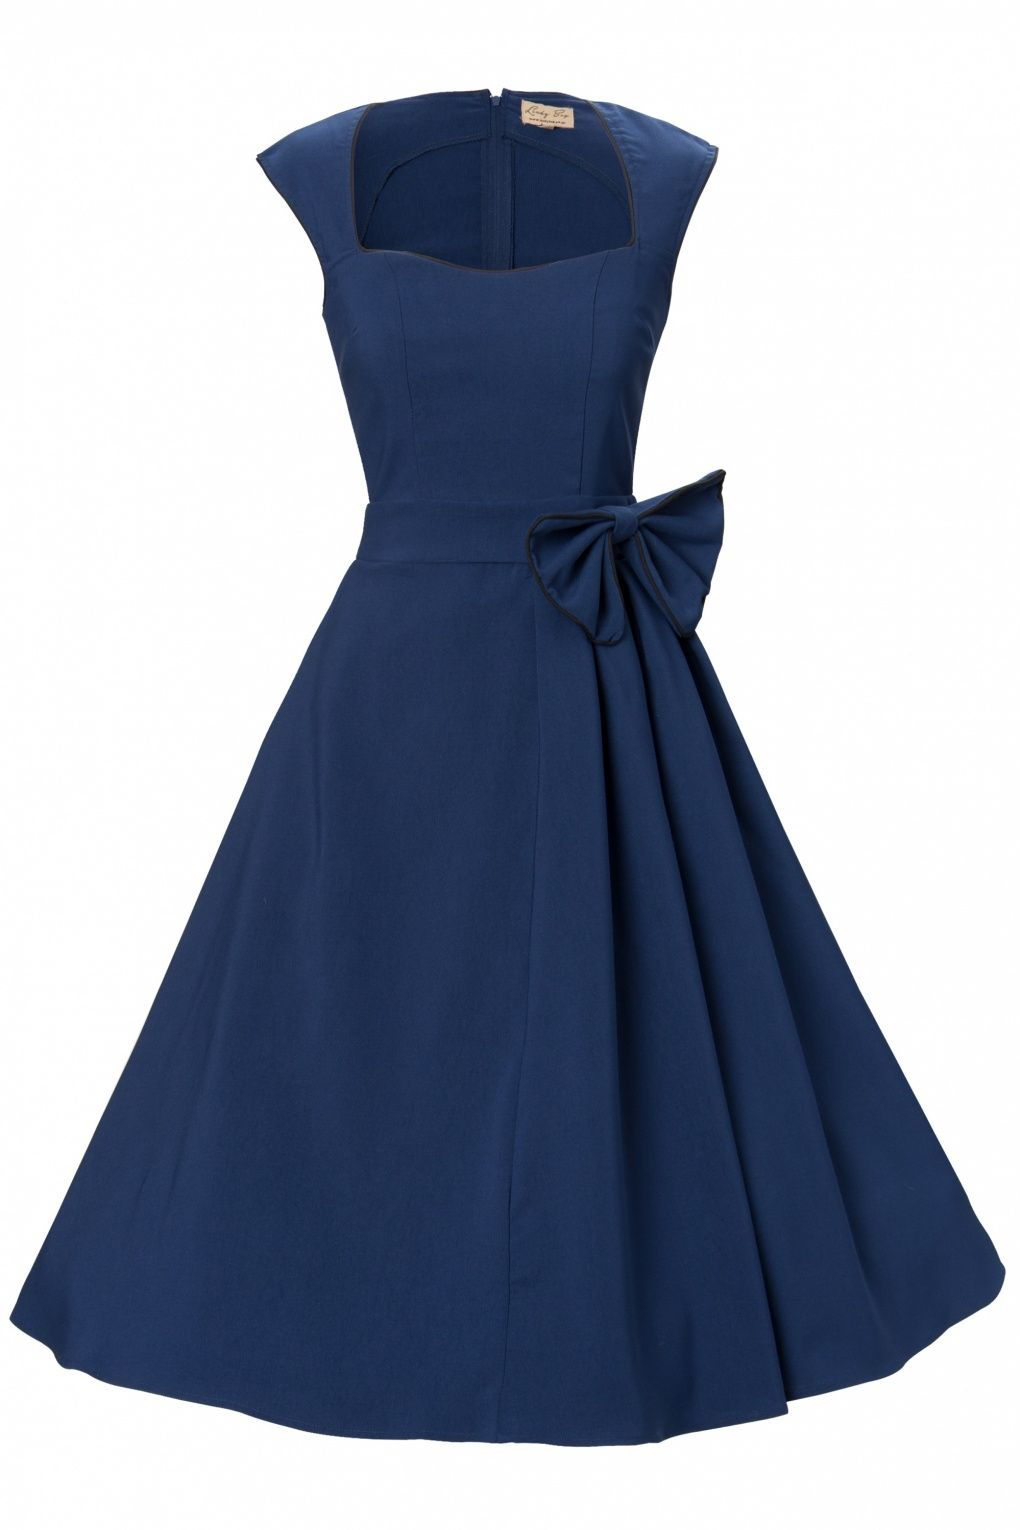 Lindy Bop - 1950's Grace Midnight Blue Bow vintage style swing party roc